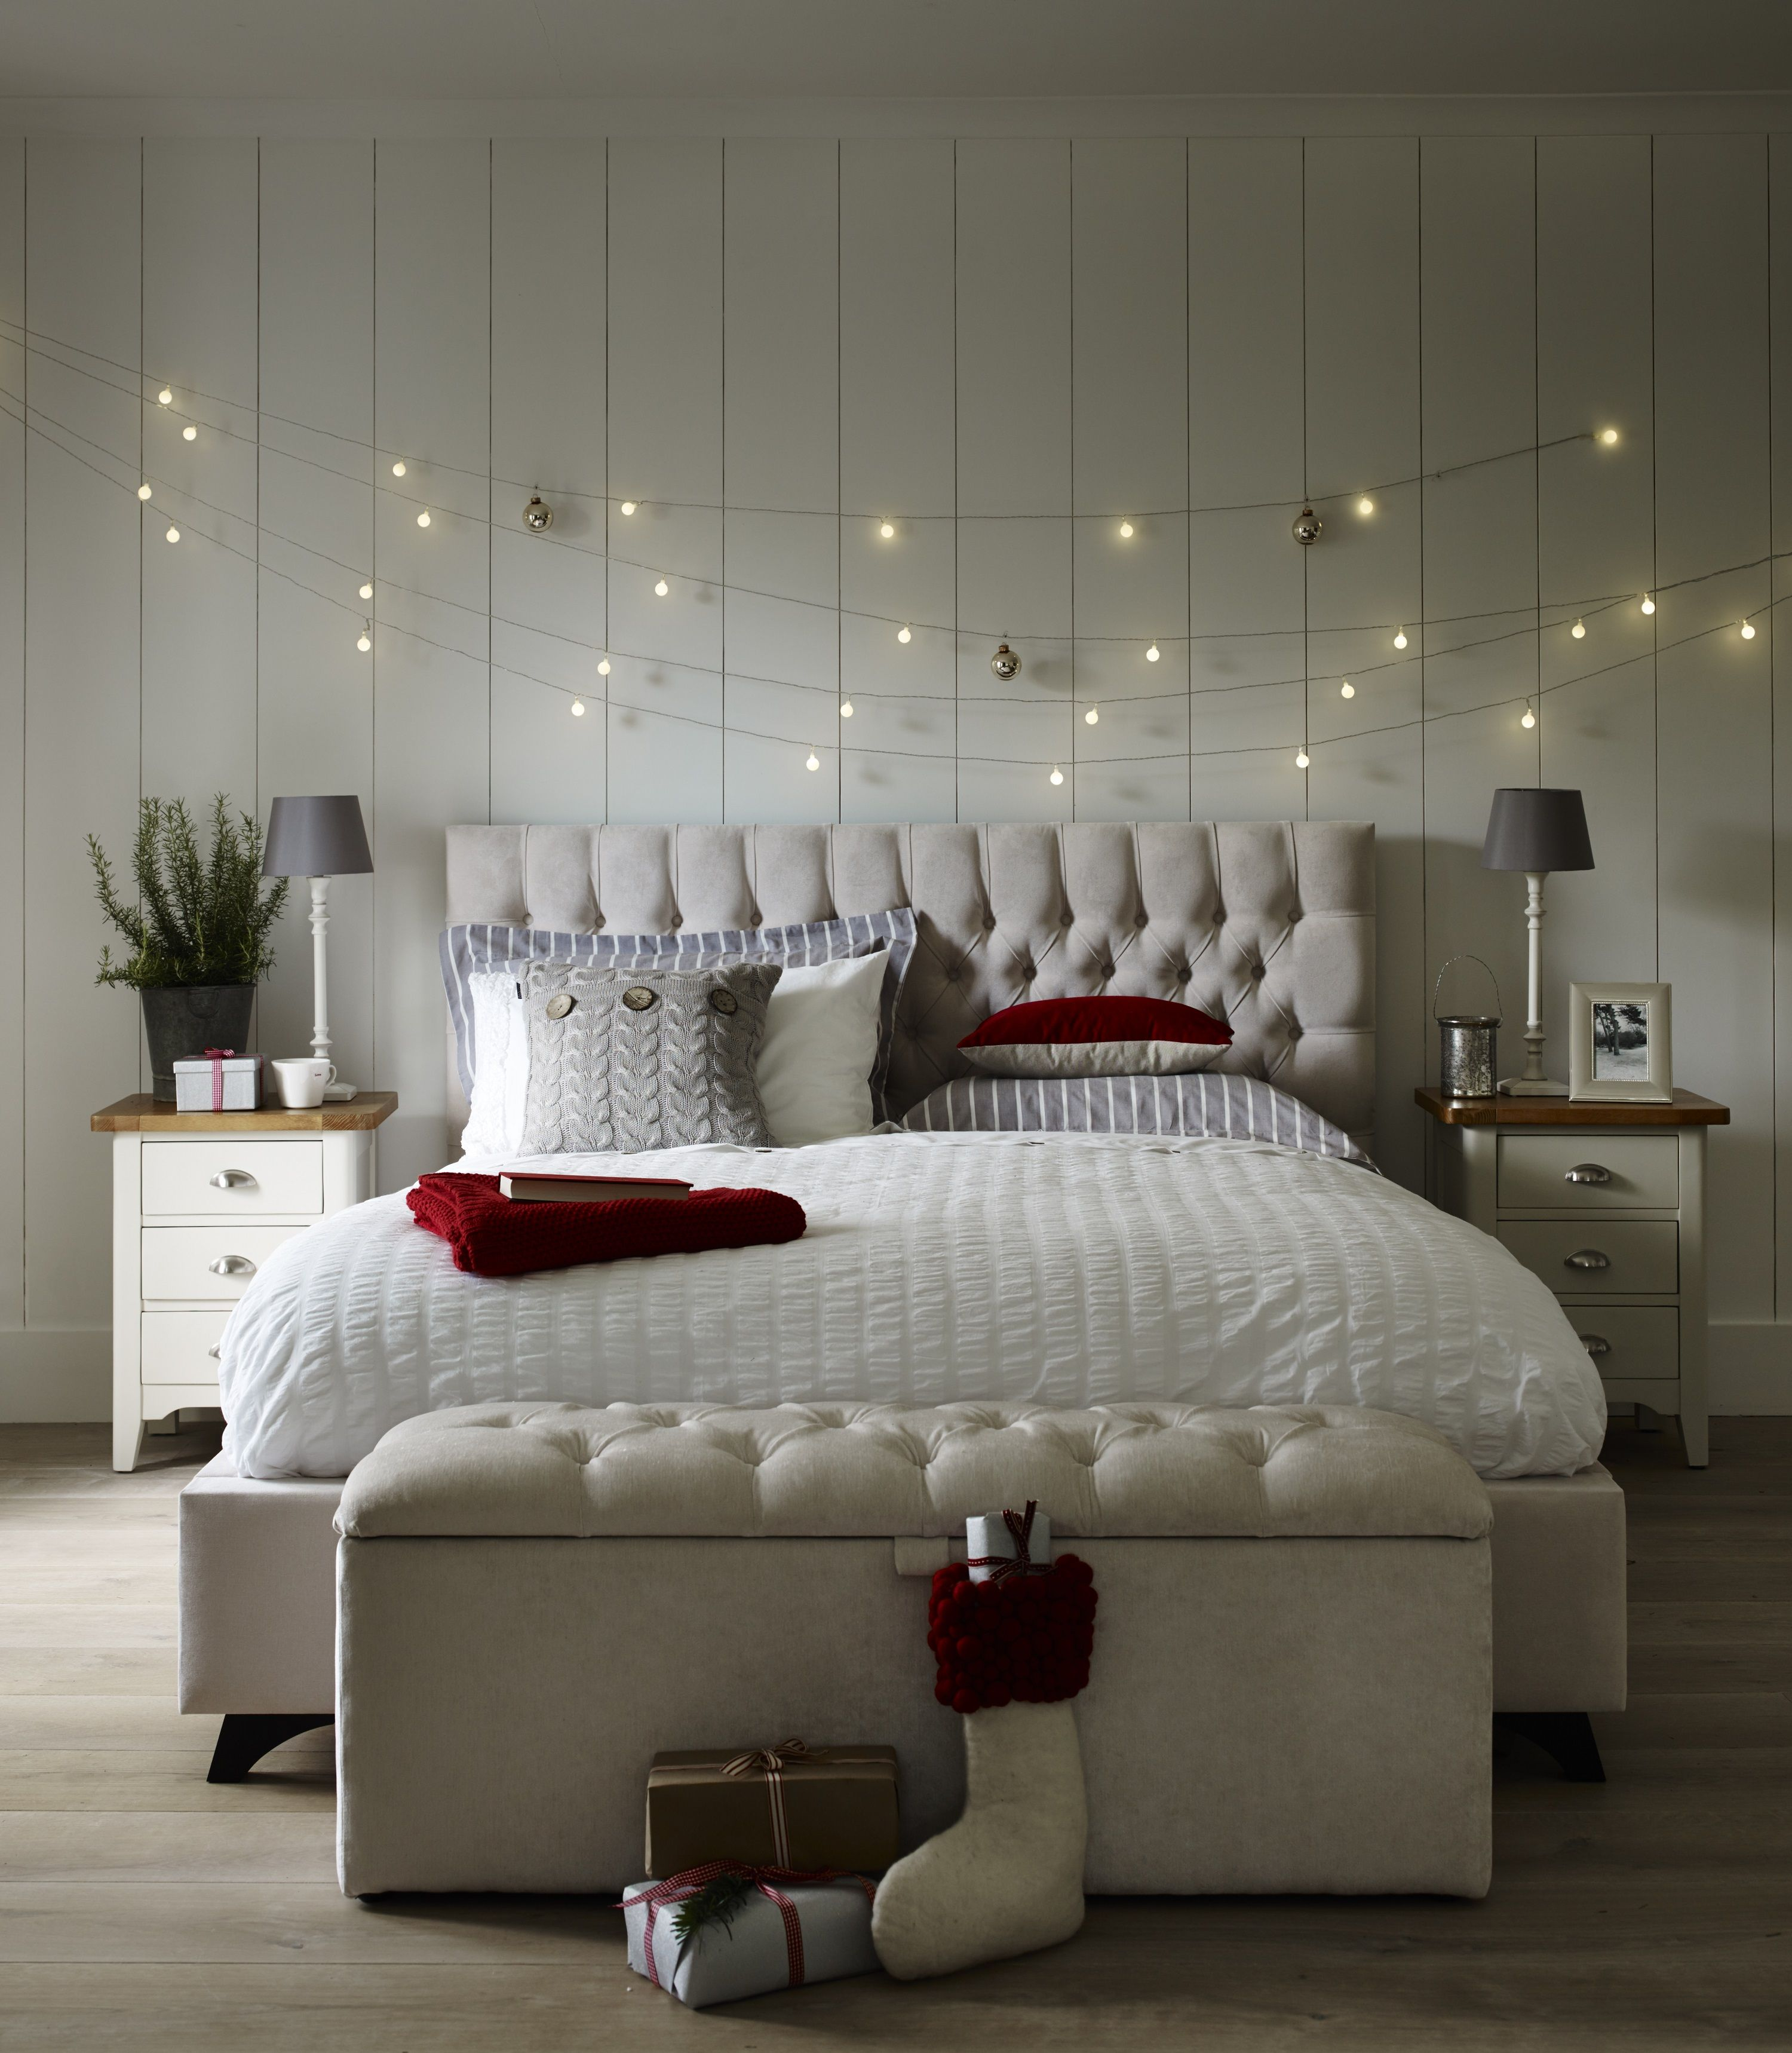 Add Strings Of Fairy Lights Above The Bed For A Magical Christmas